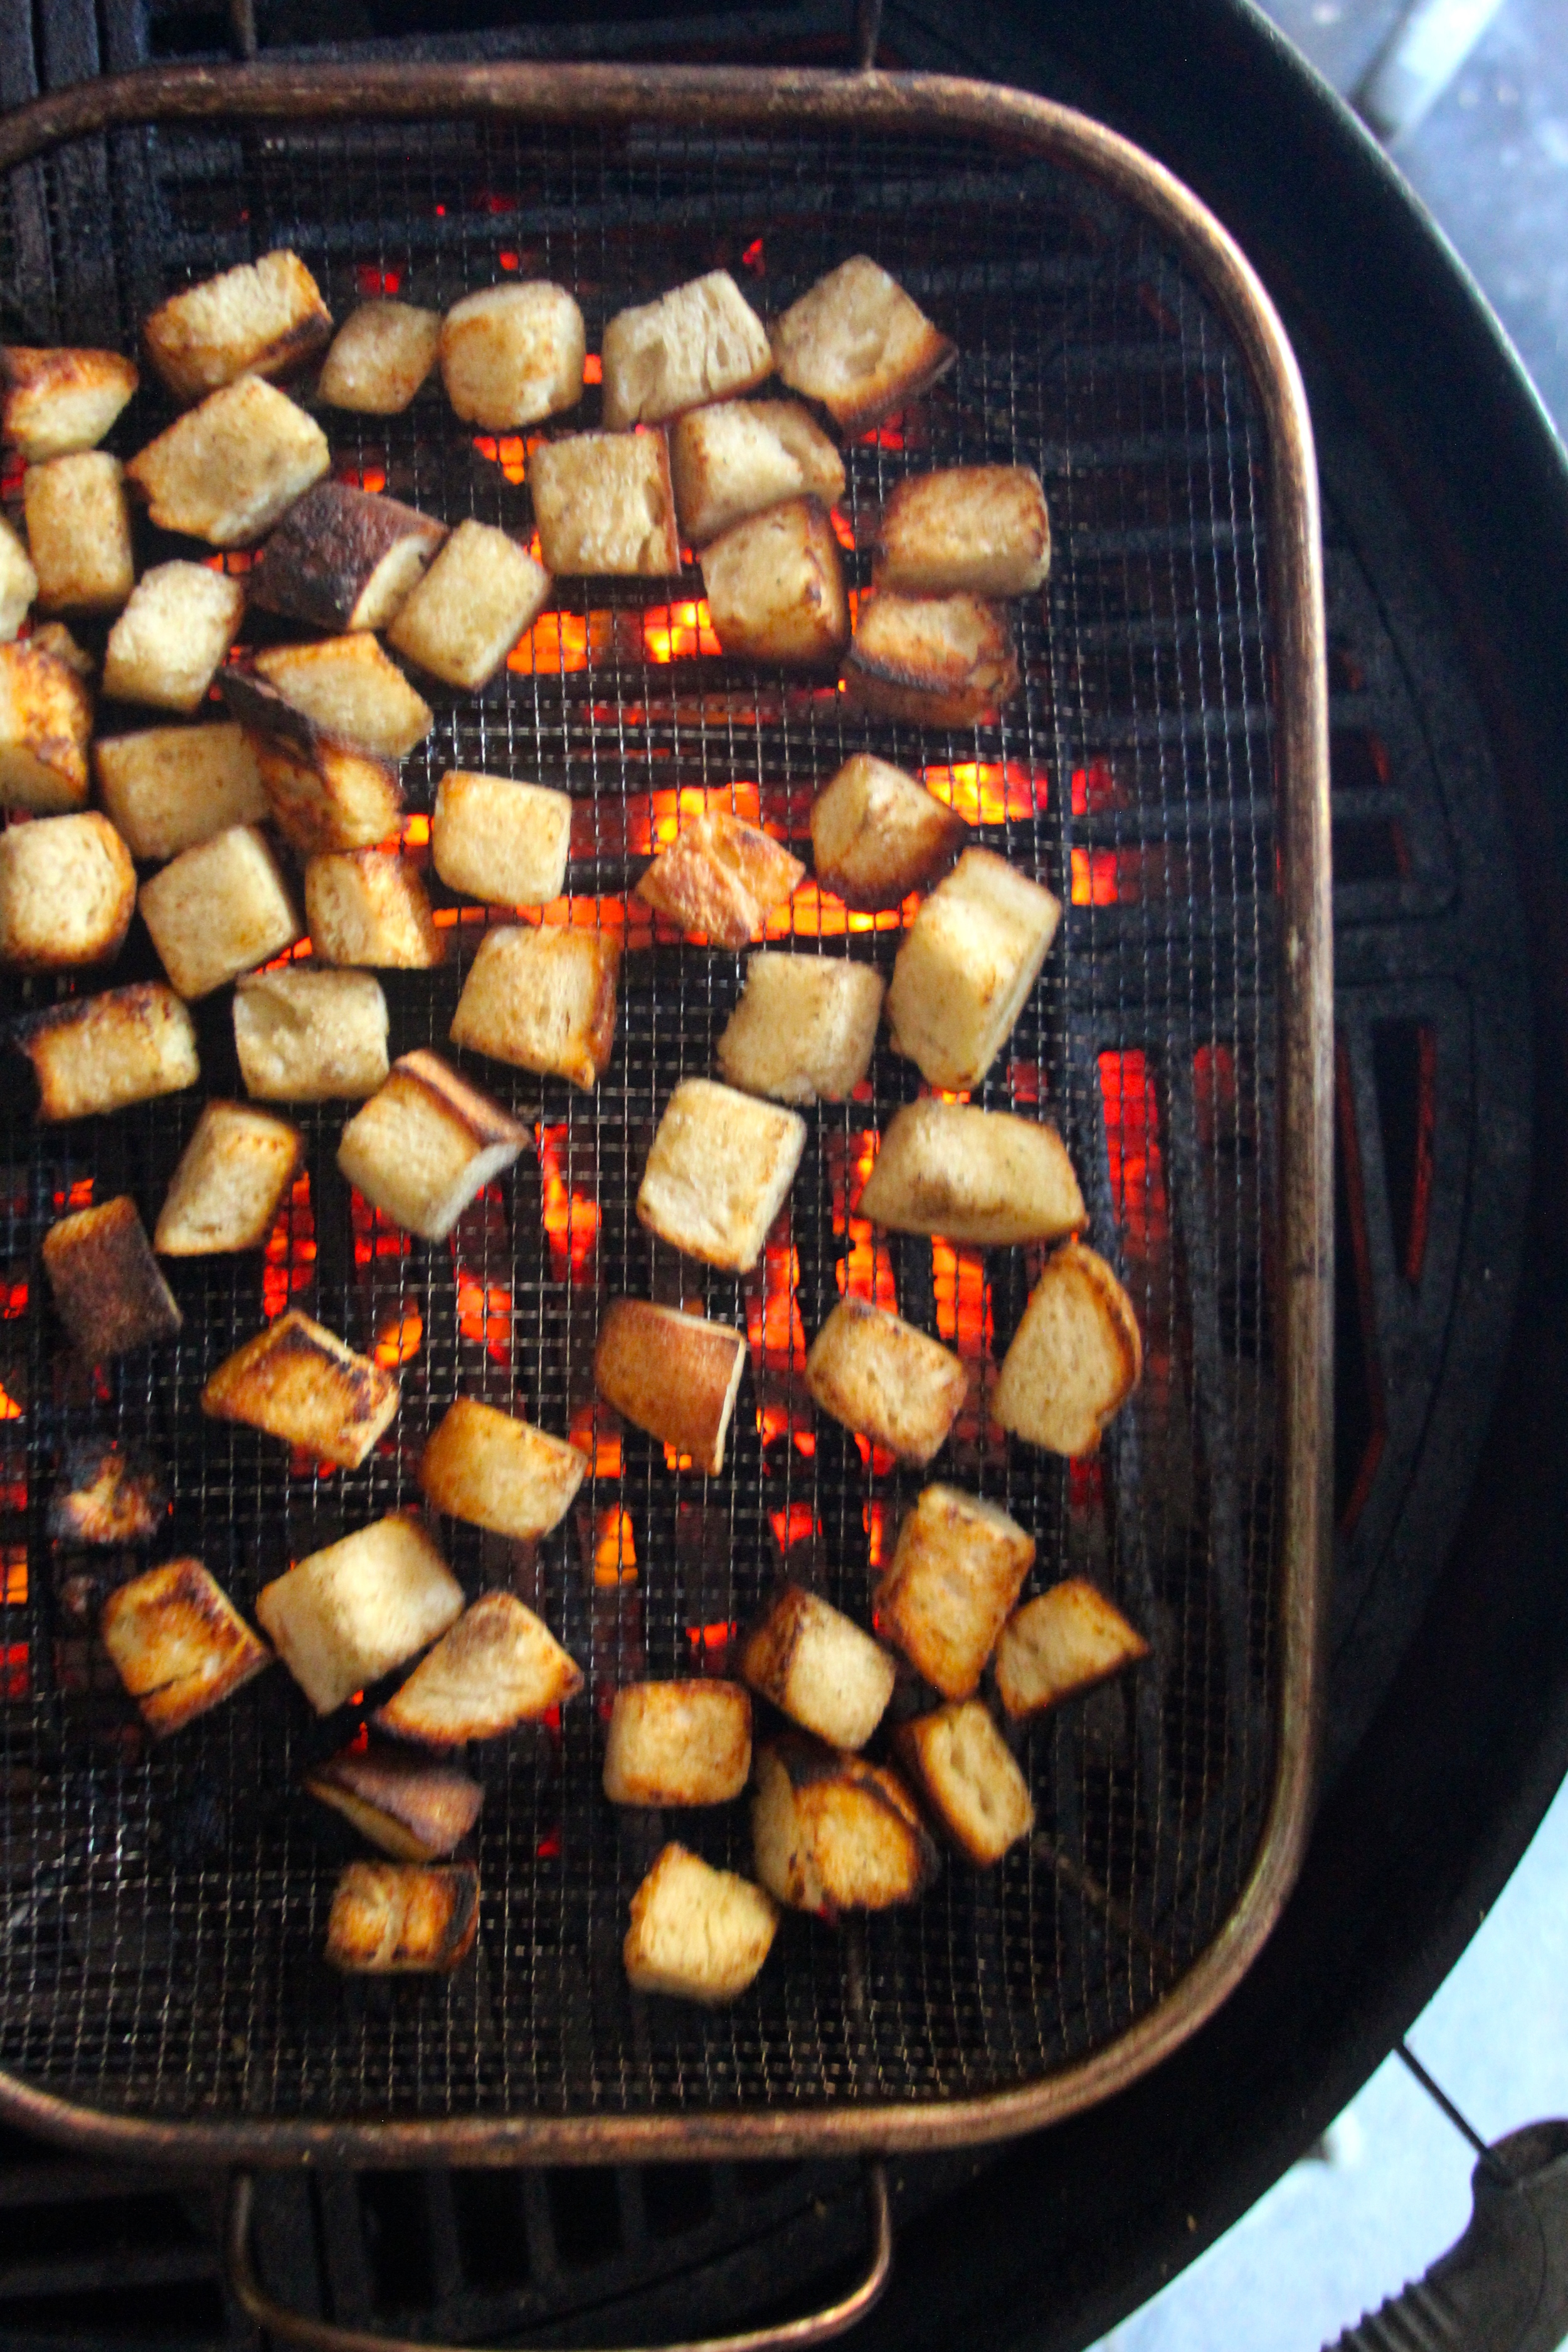 Grilled Sourdough Croutons